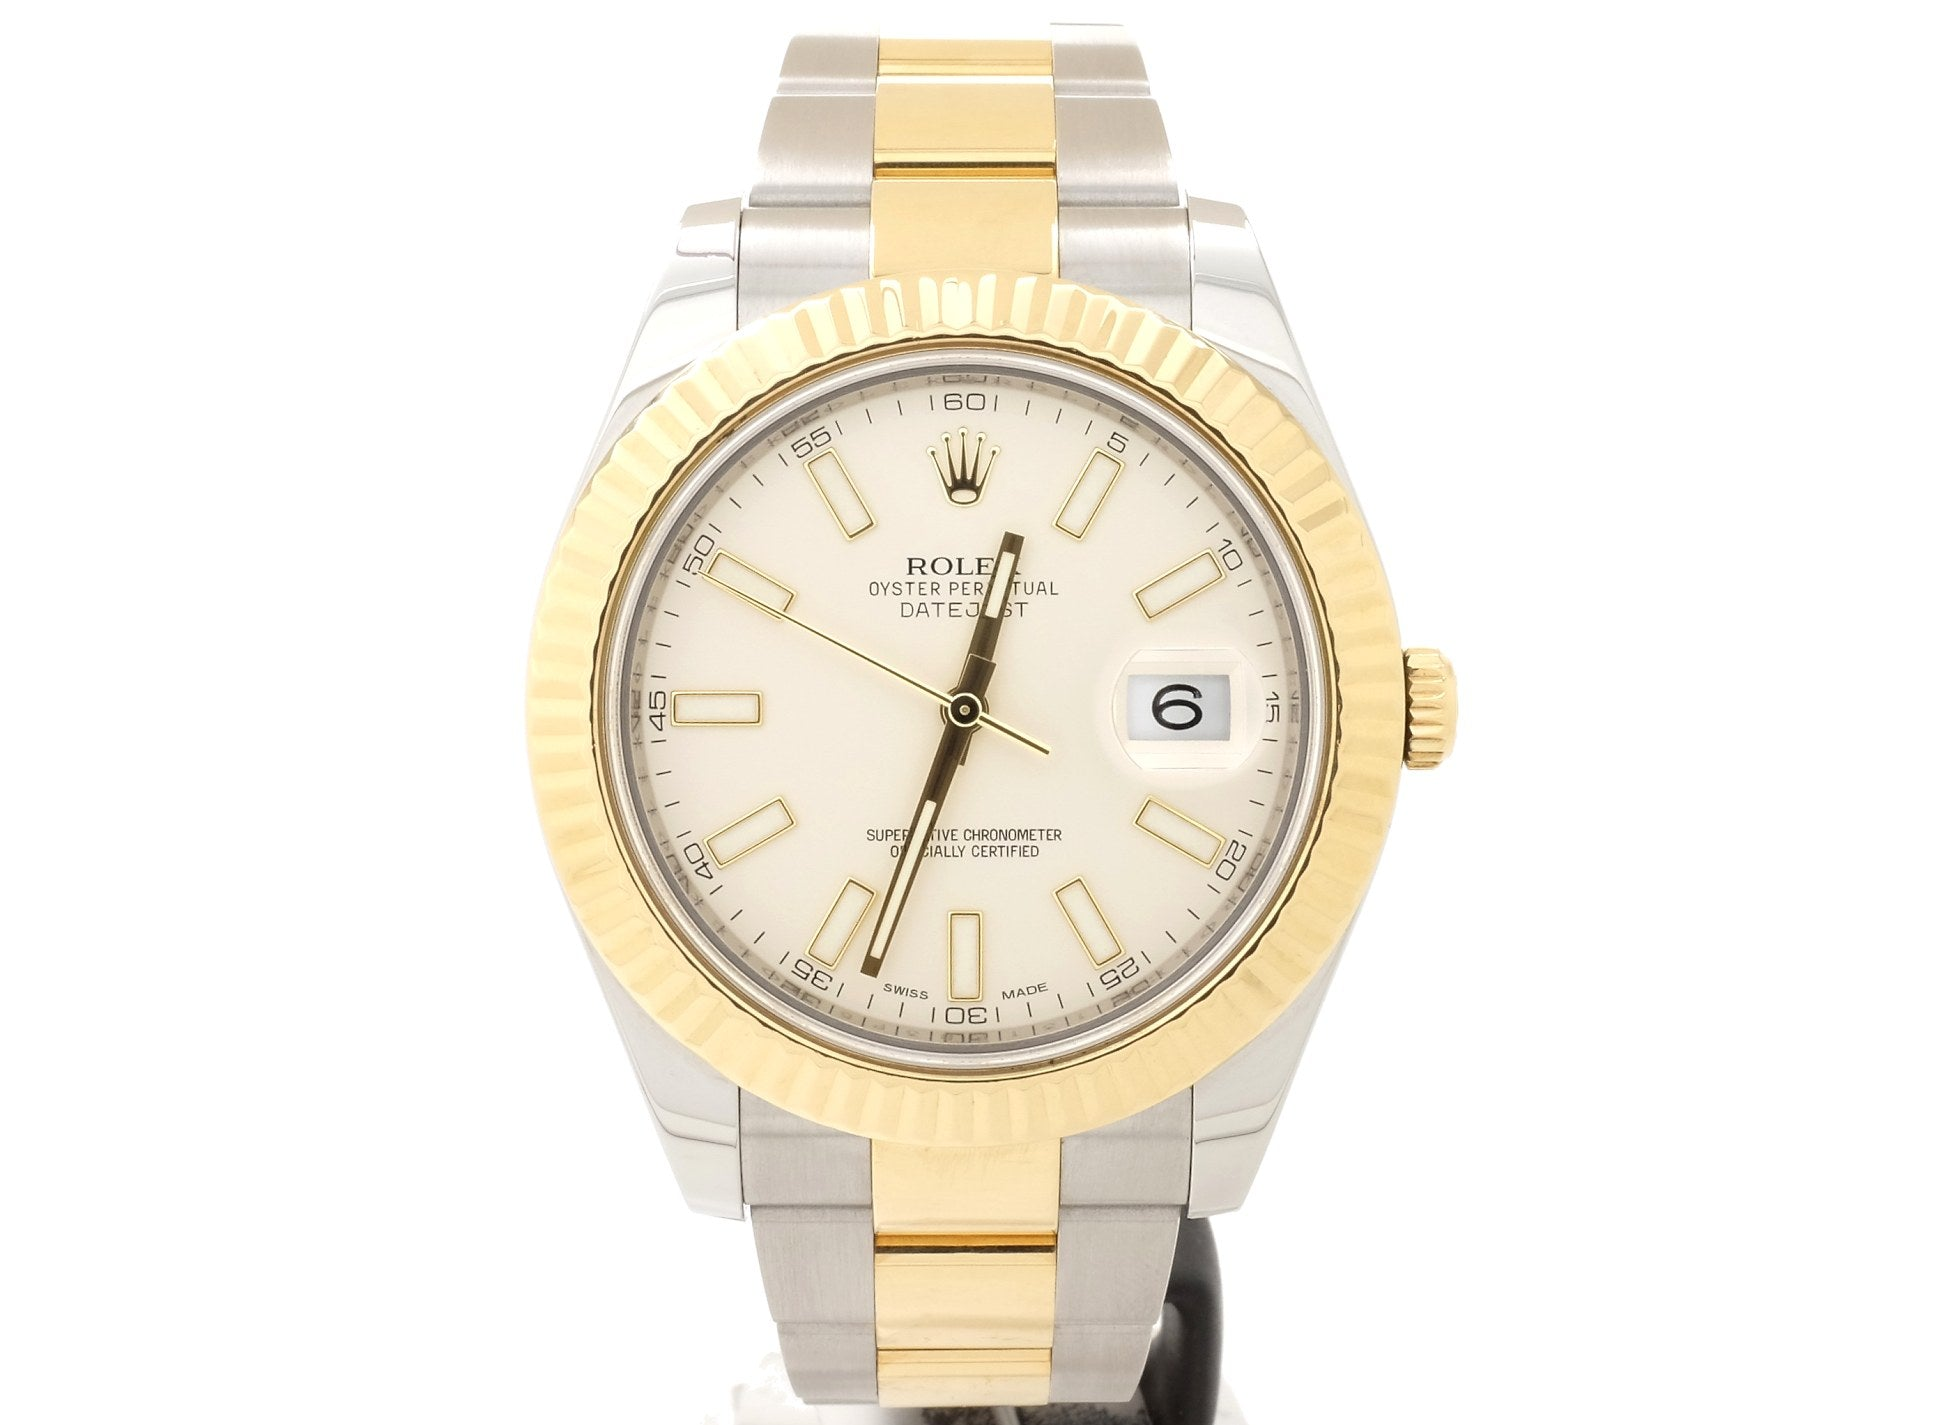 41mm Rolex 'DATEJUST II' 116333 with Cream Dial — Virtually Like New